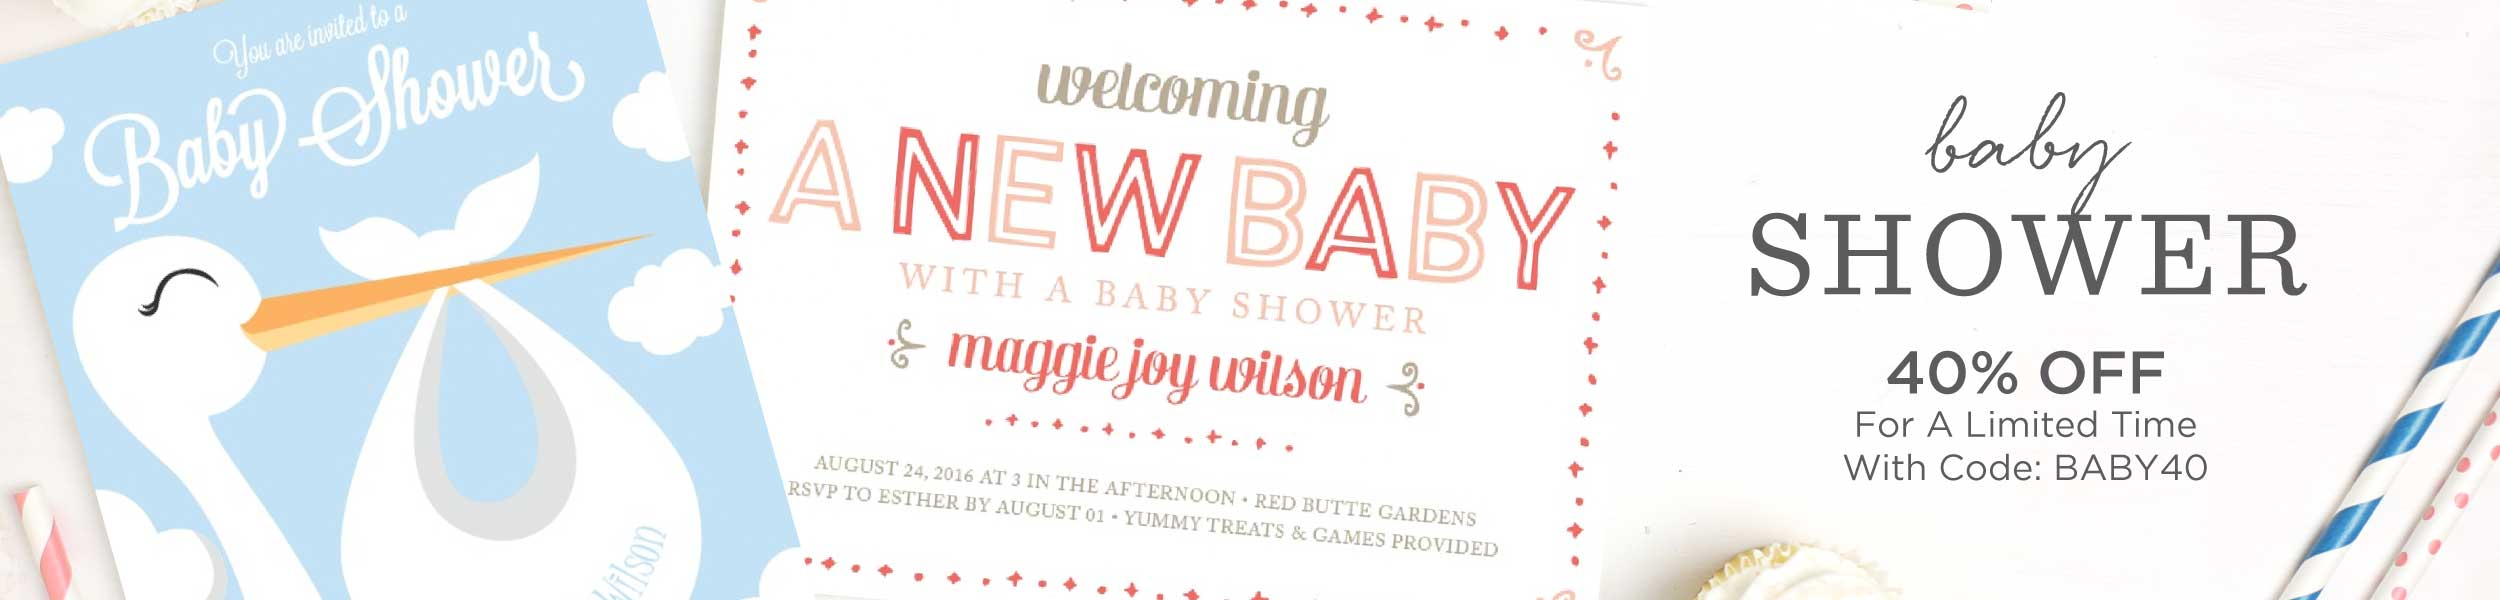 Baby Shower Invitations | 40% Off Super Cute Designs - Basic Invite